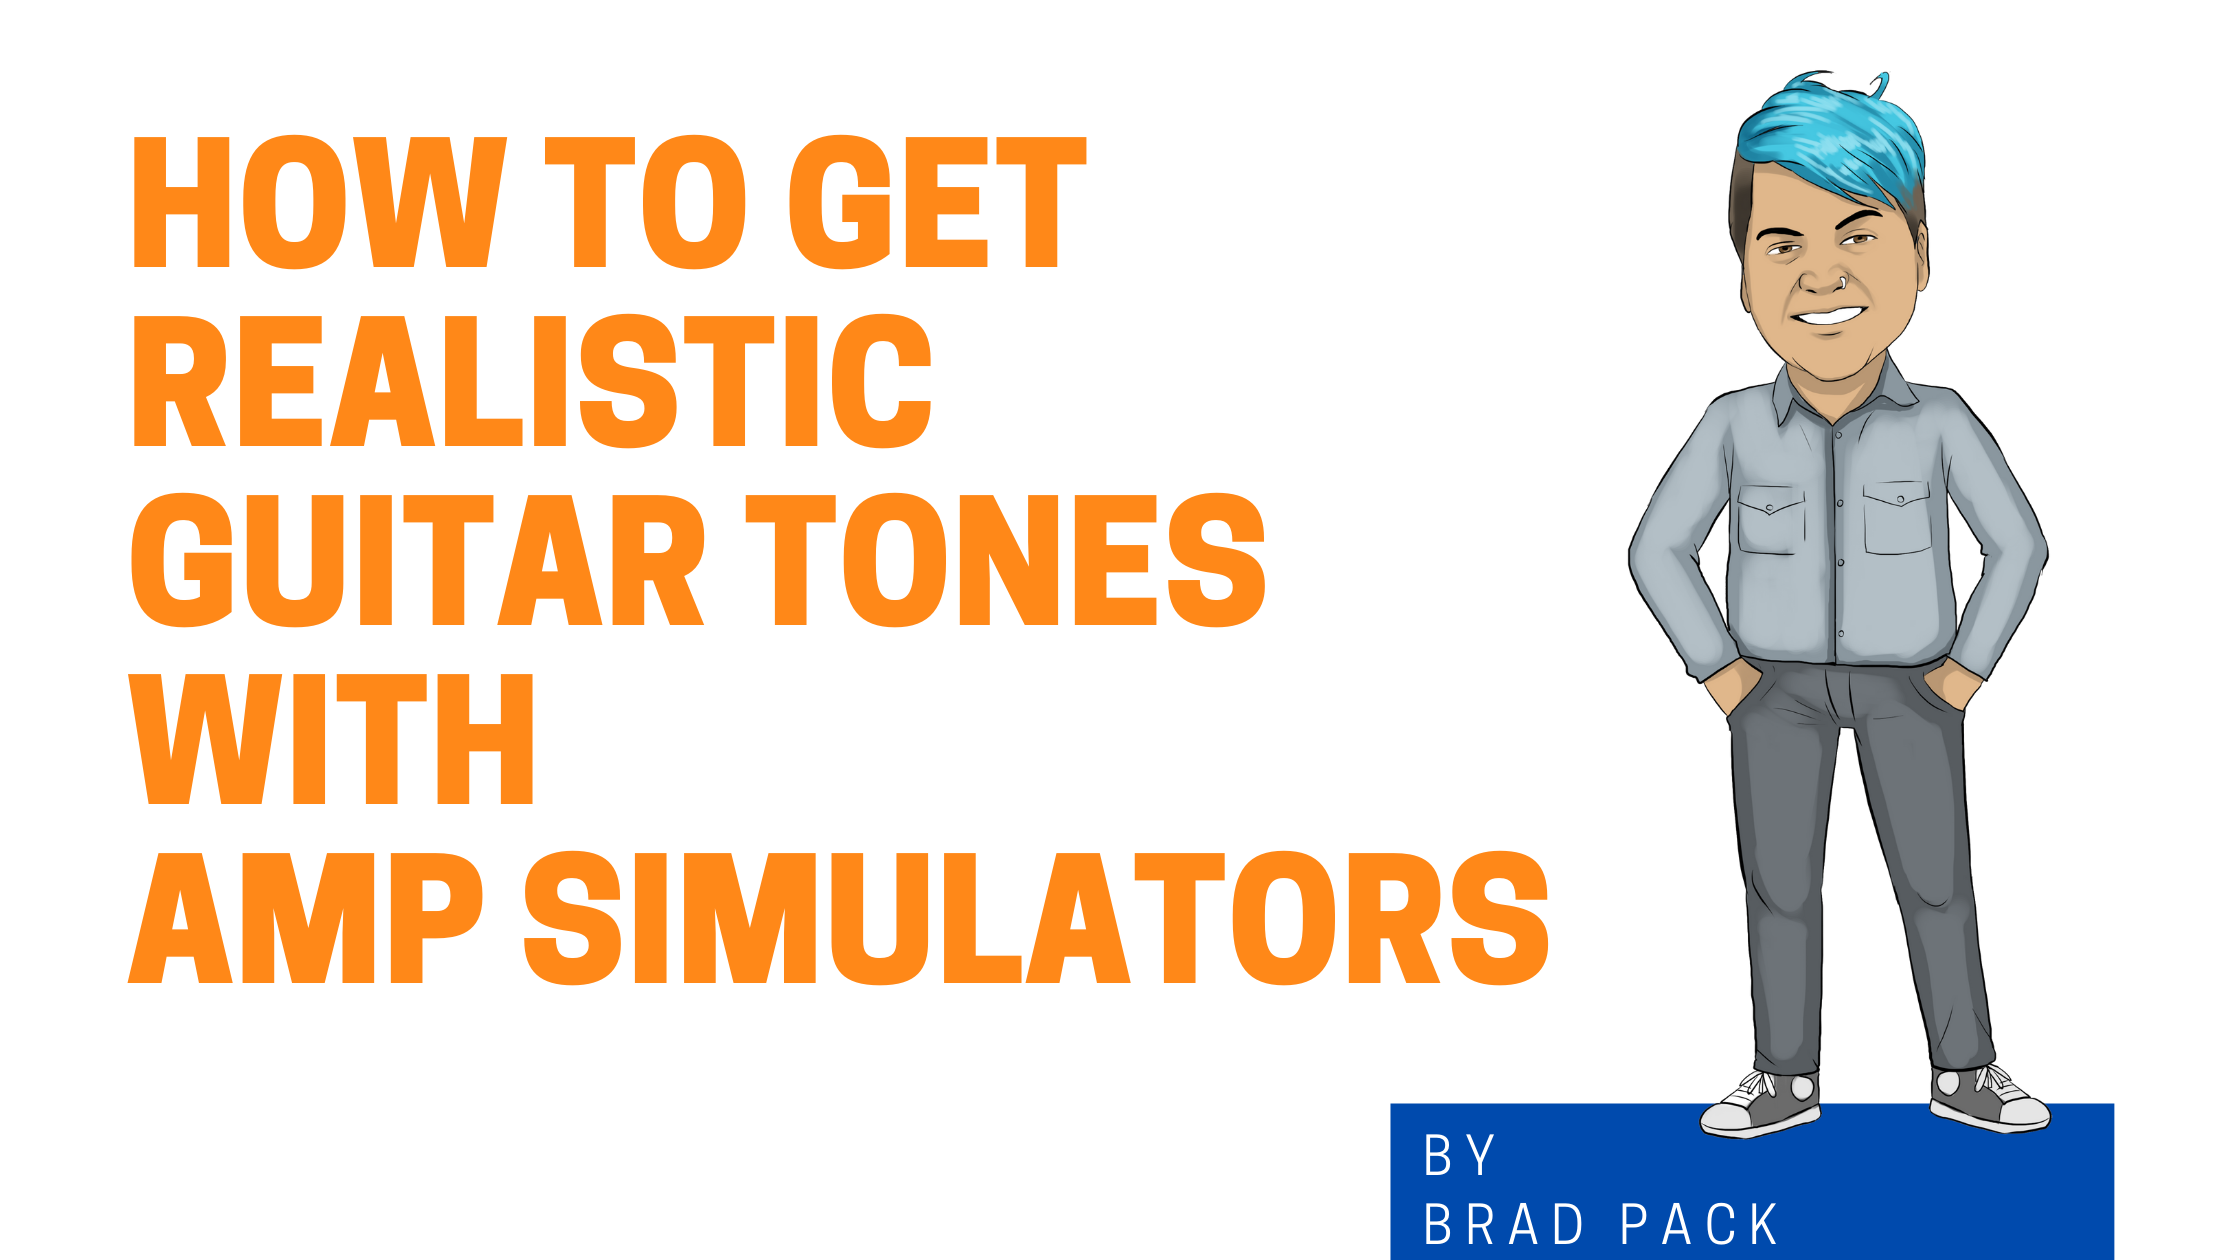 How to Get Realistic Guitar Tones With Amp Simulators